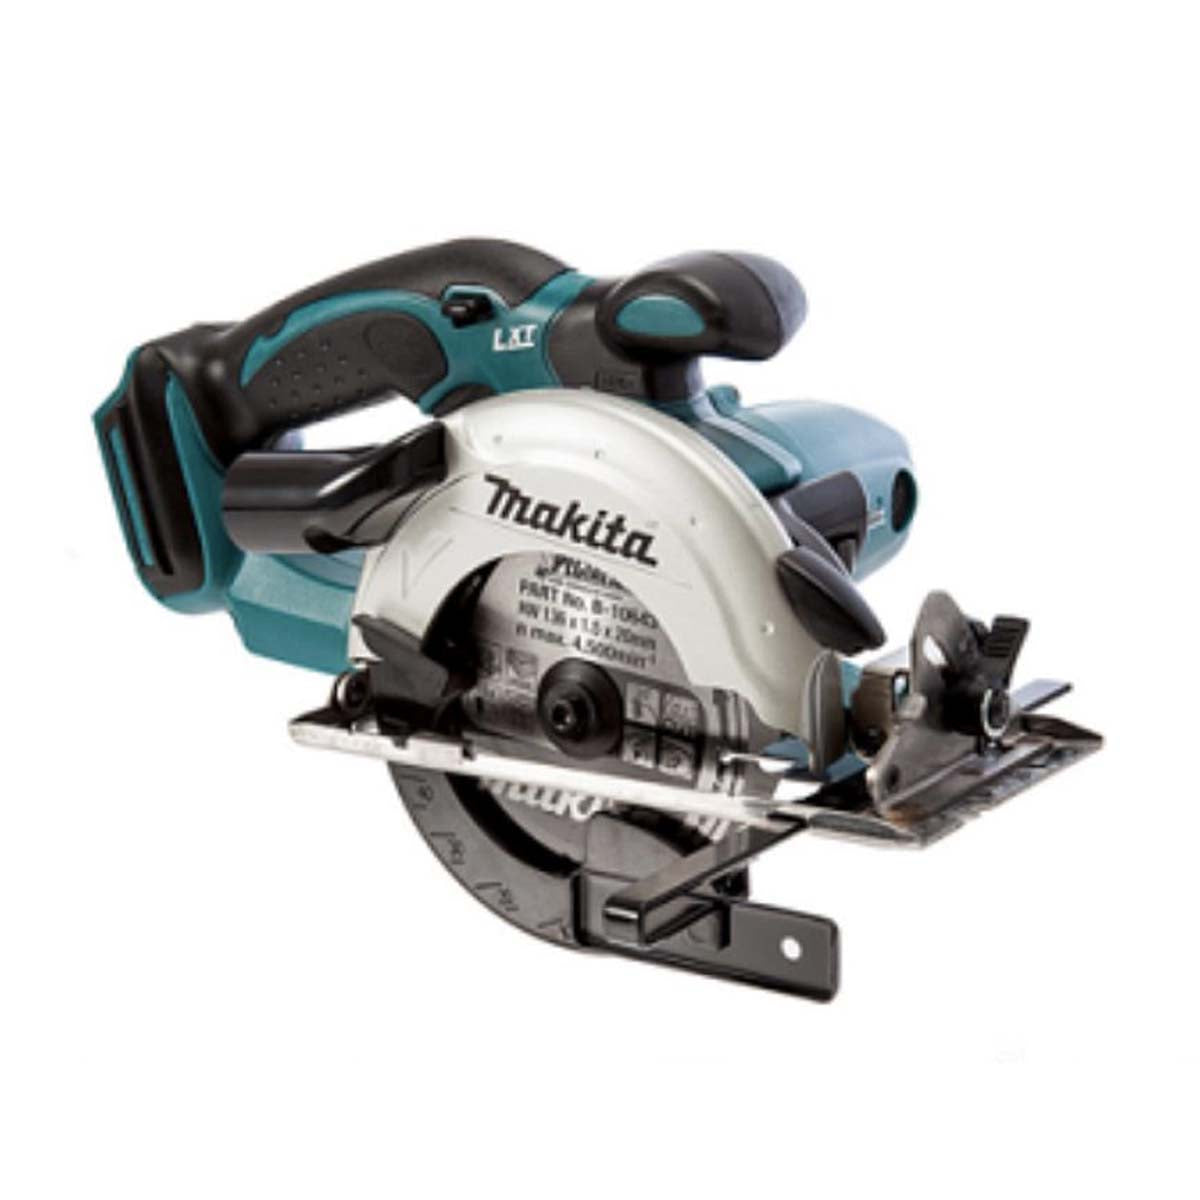 Makita Cordless Circular Saw 18V - Bare Unit (DSS501)